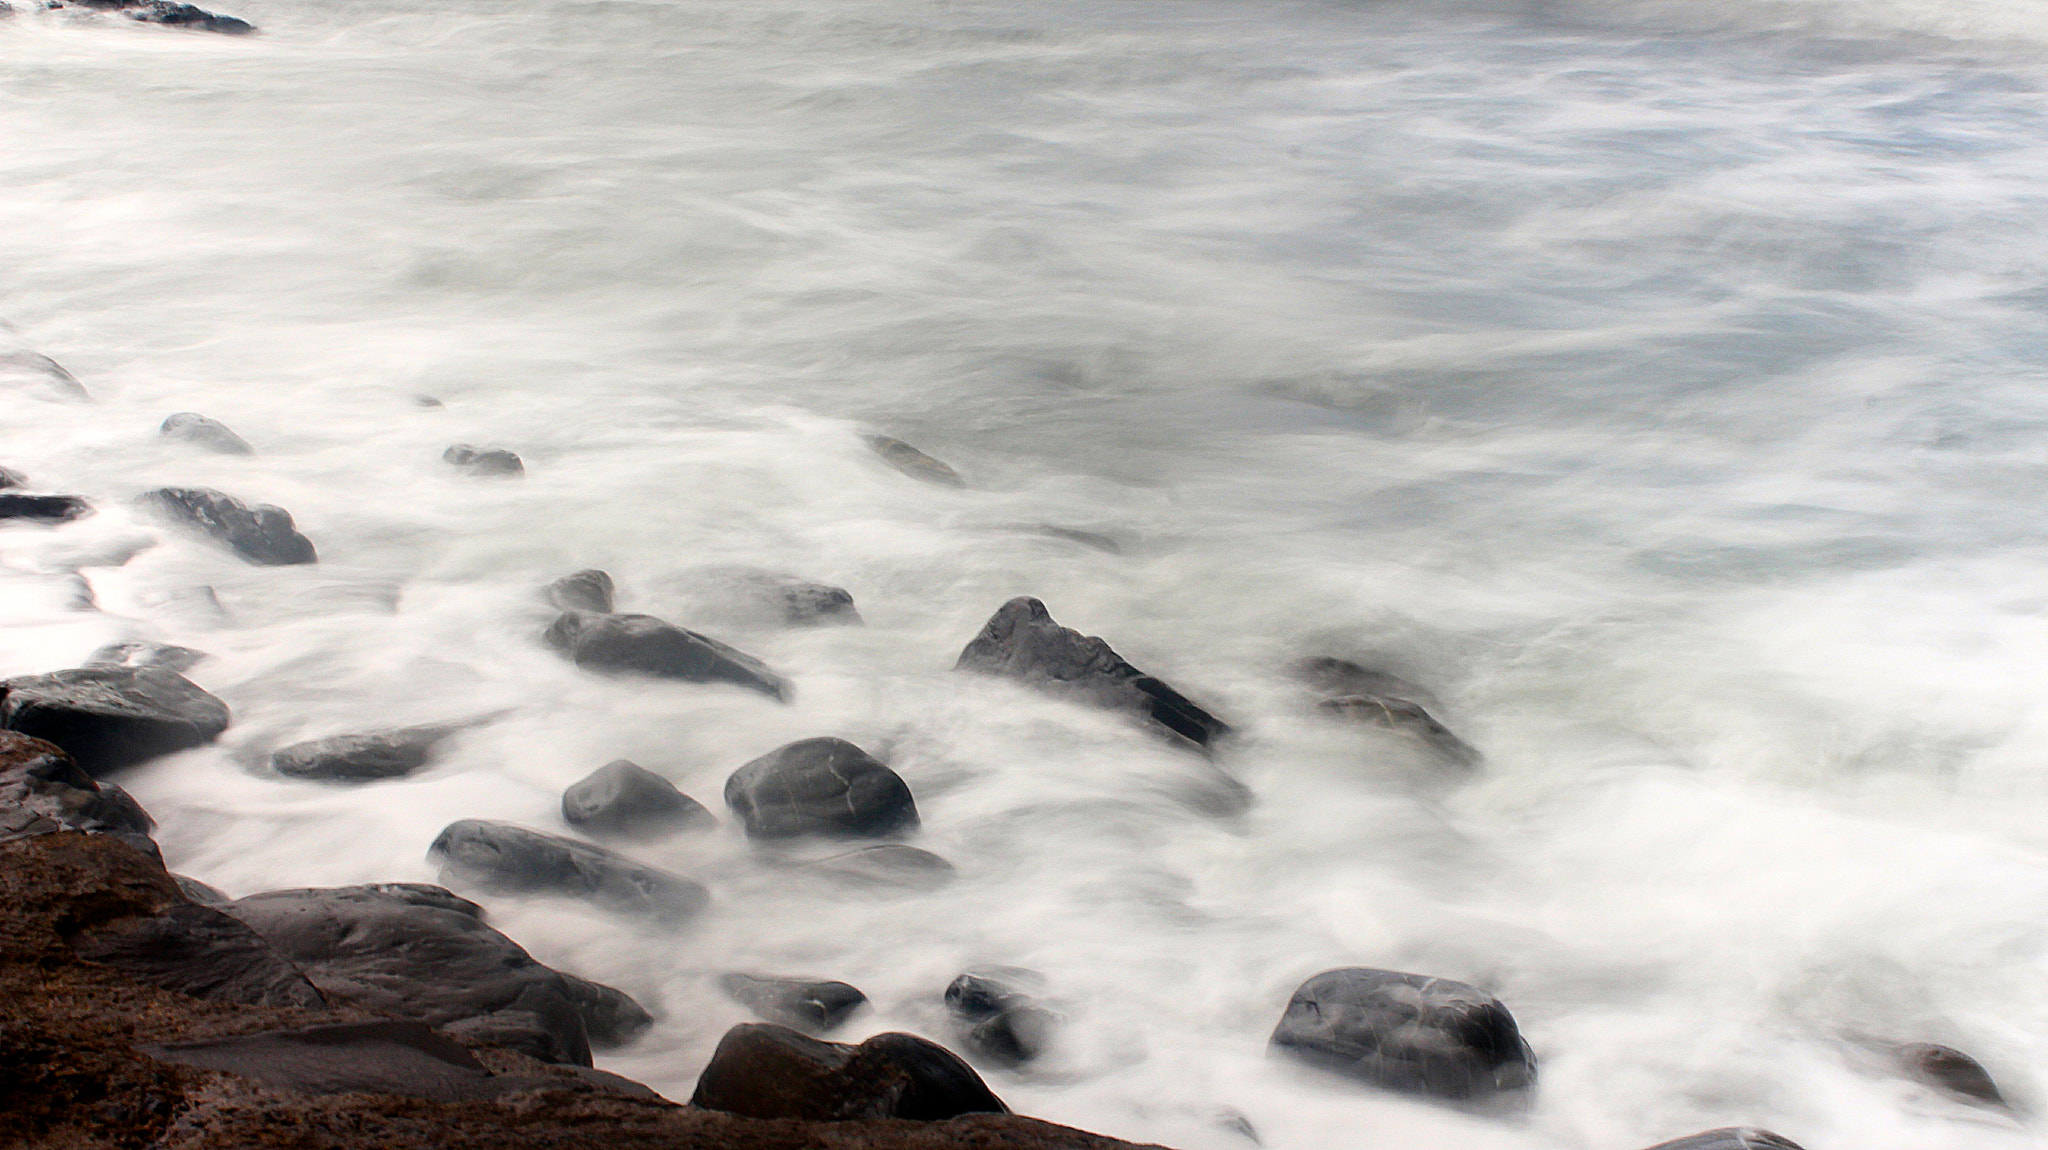 Photograph Pebbles and Waves by Sam Barnwell on 500px